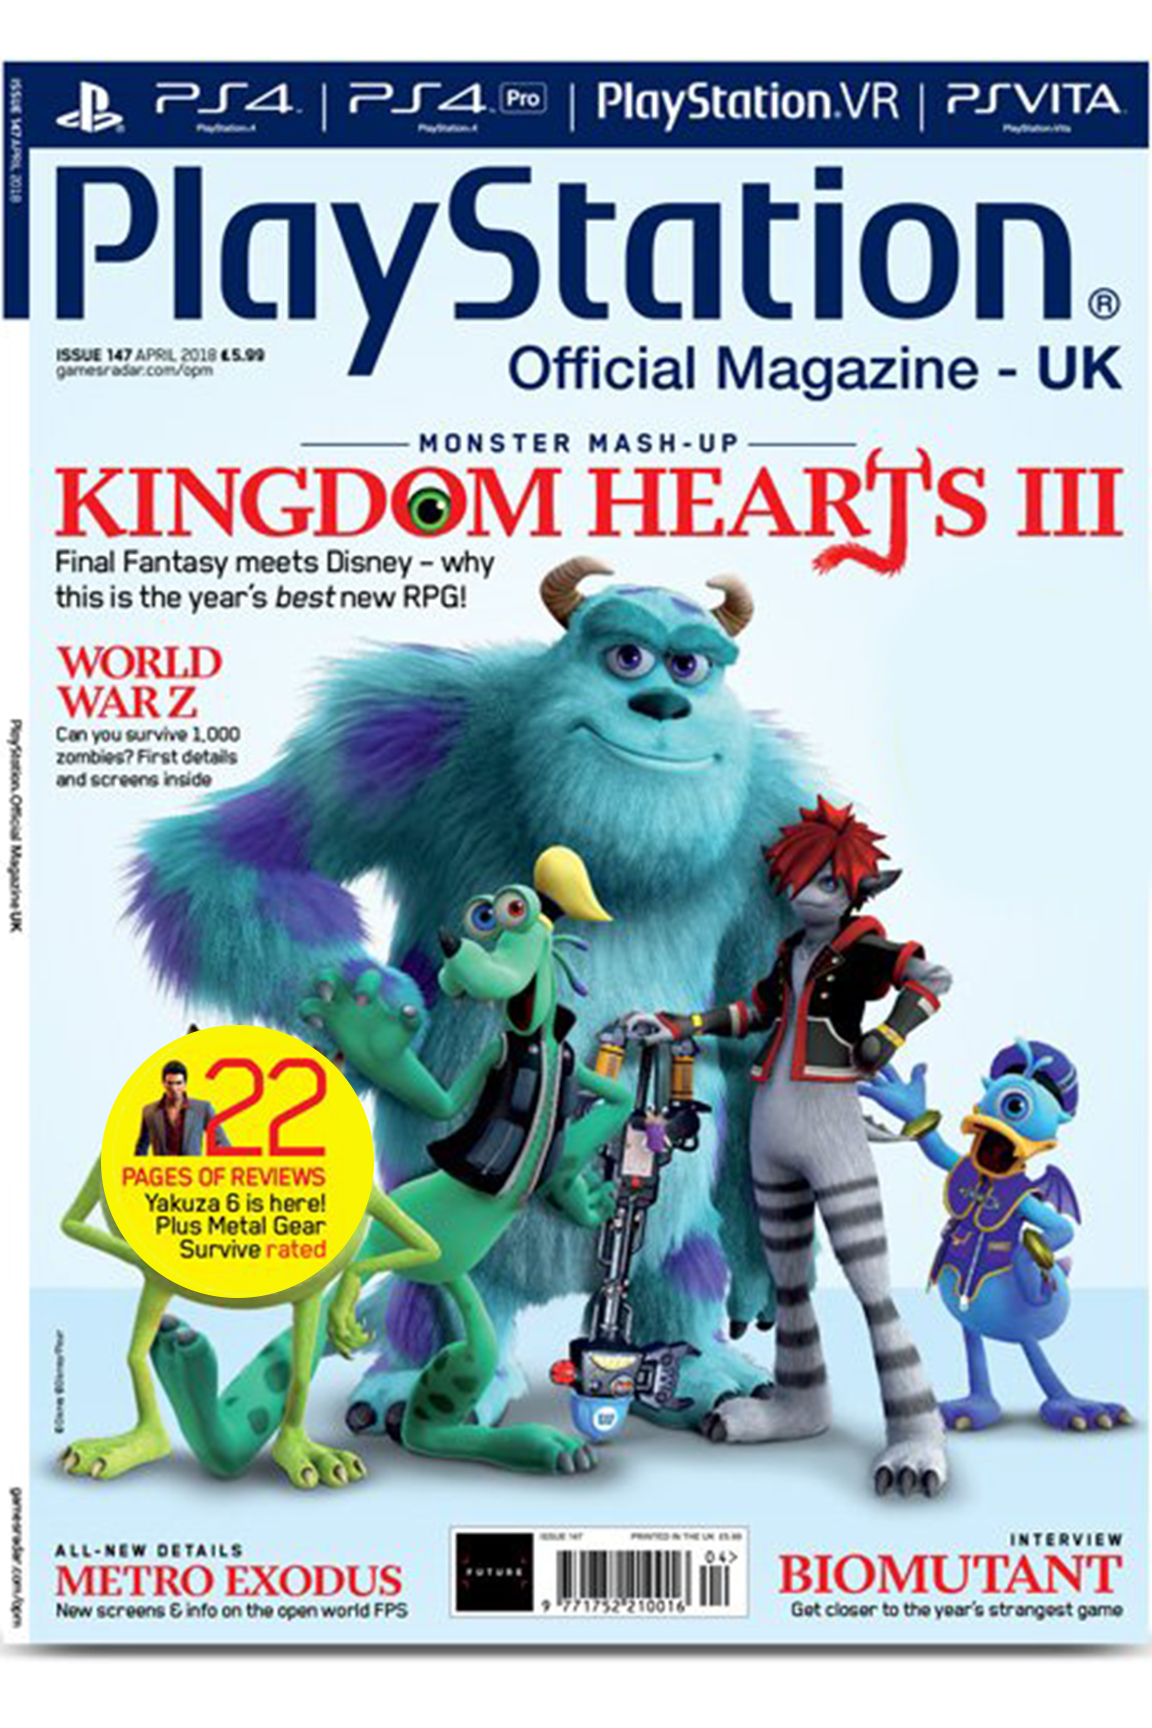 uk playstation magazine cover of kingdom hearts 3 looks great